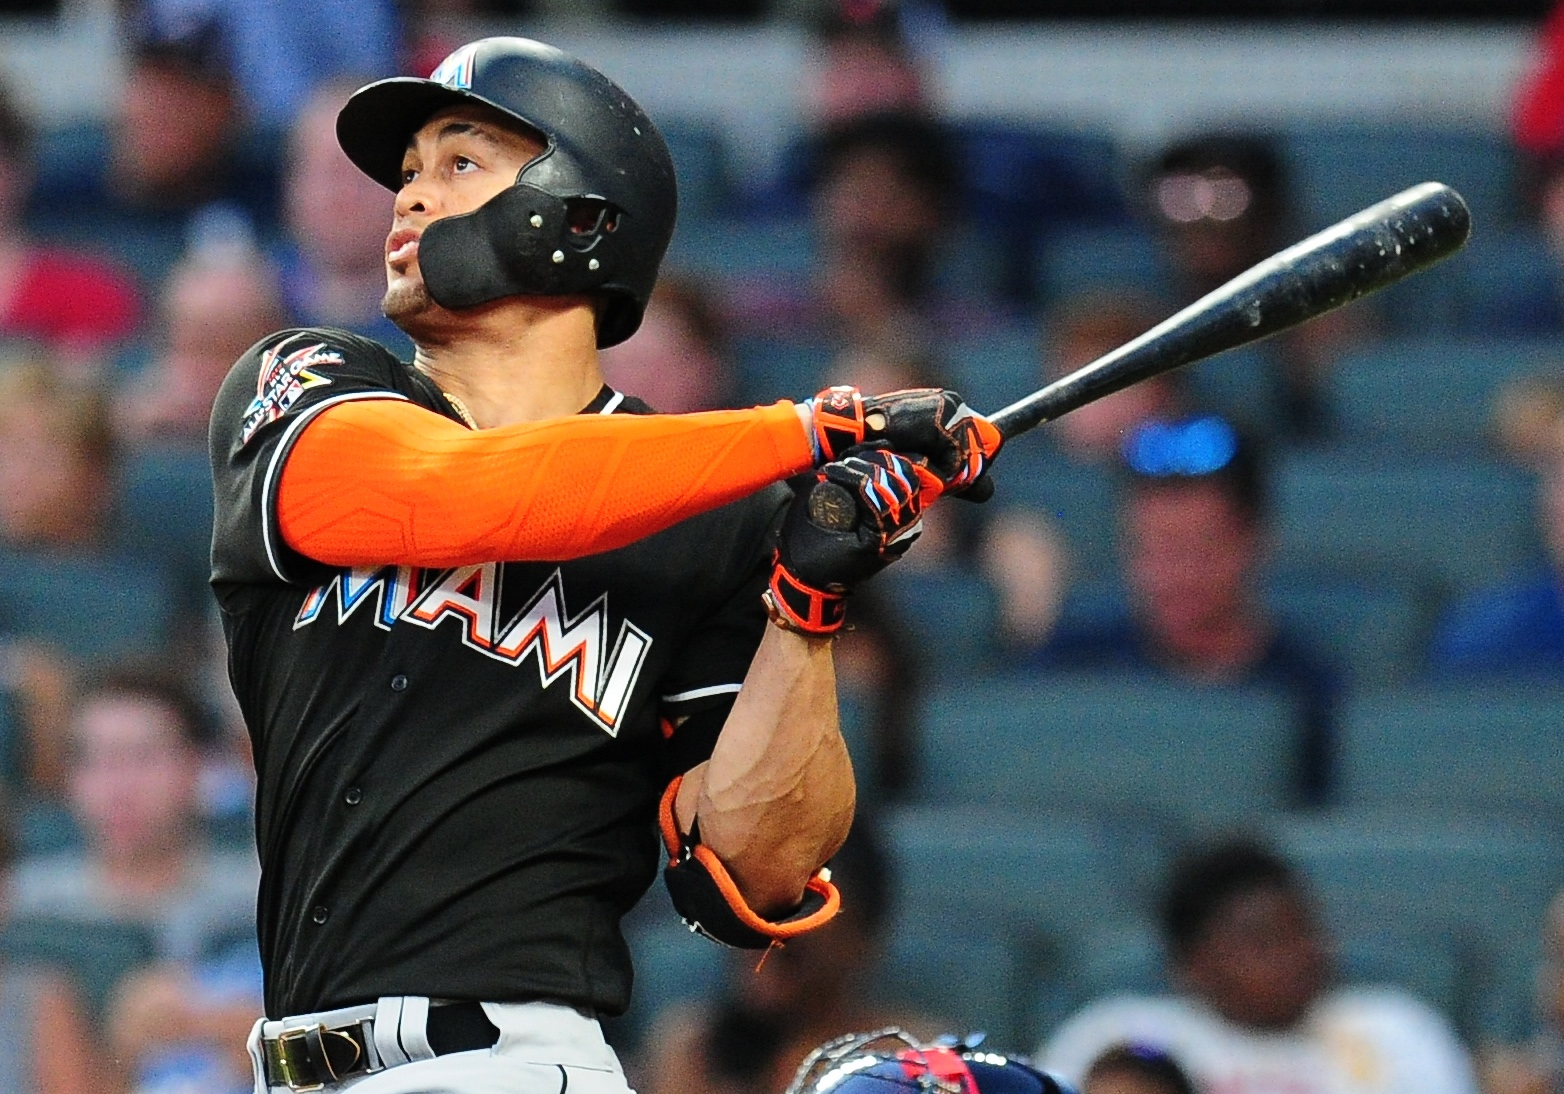 These Three Peloteros Are Dark Horse Candidates for MLB's MVP Awards